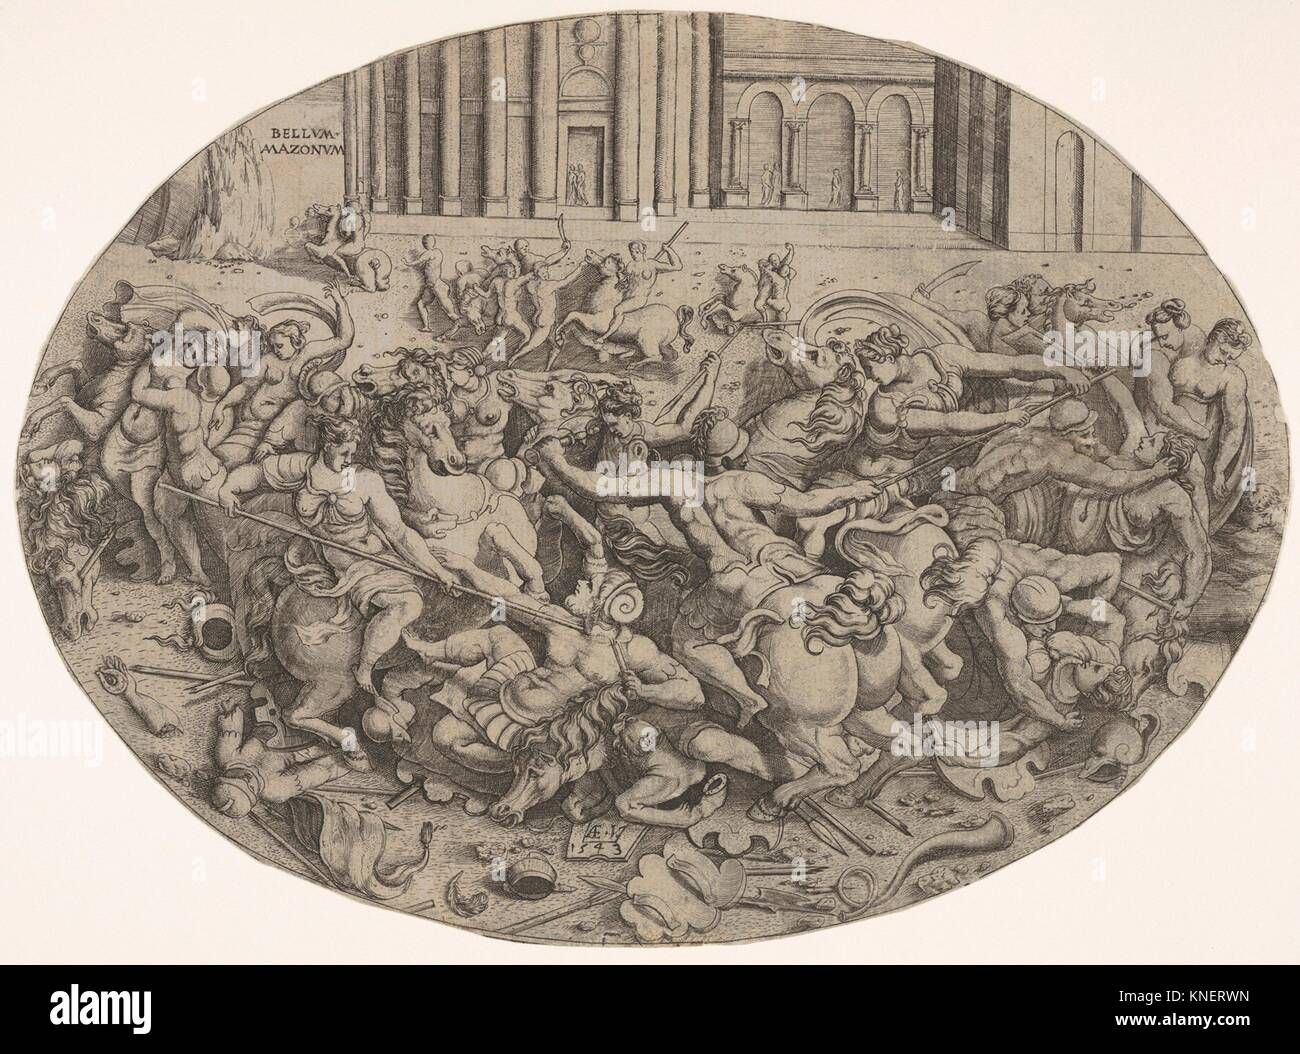 Combat between Amazons and men in front of architectural arcades, an oval composition with weapons, headgear, and - Stock Image